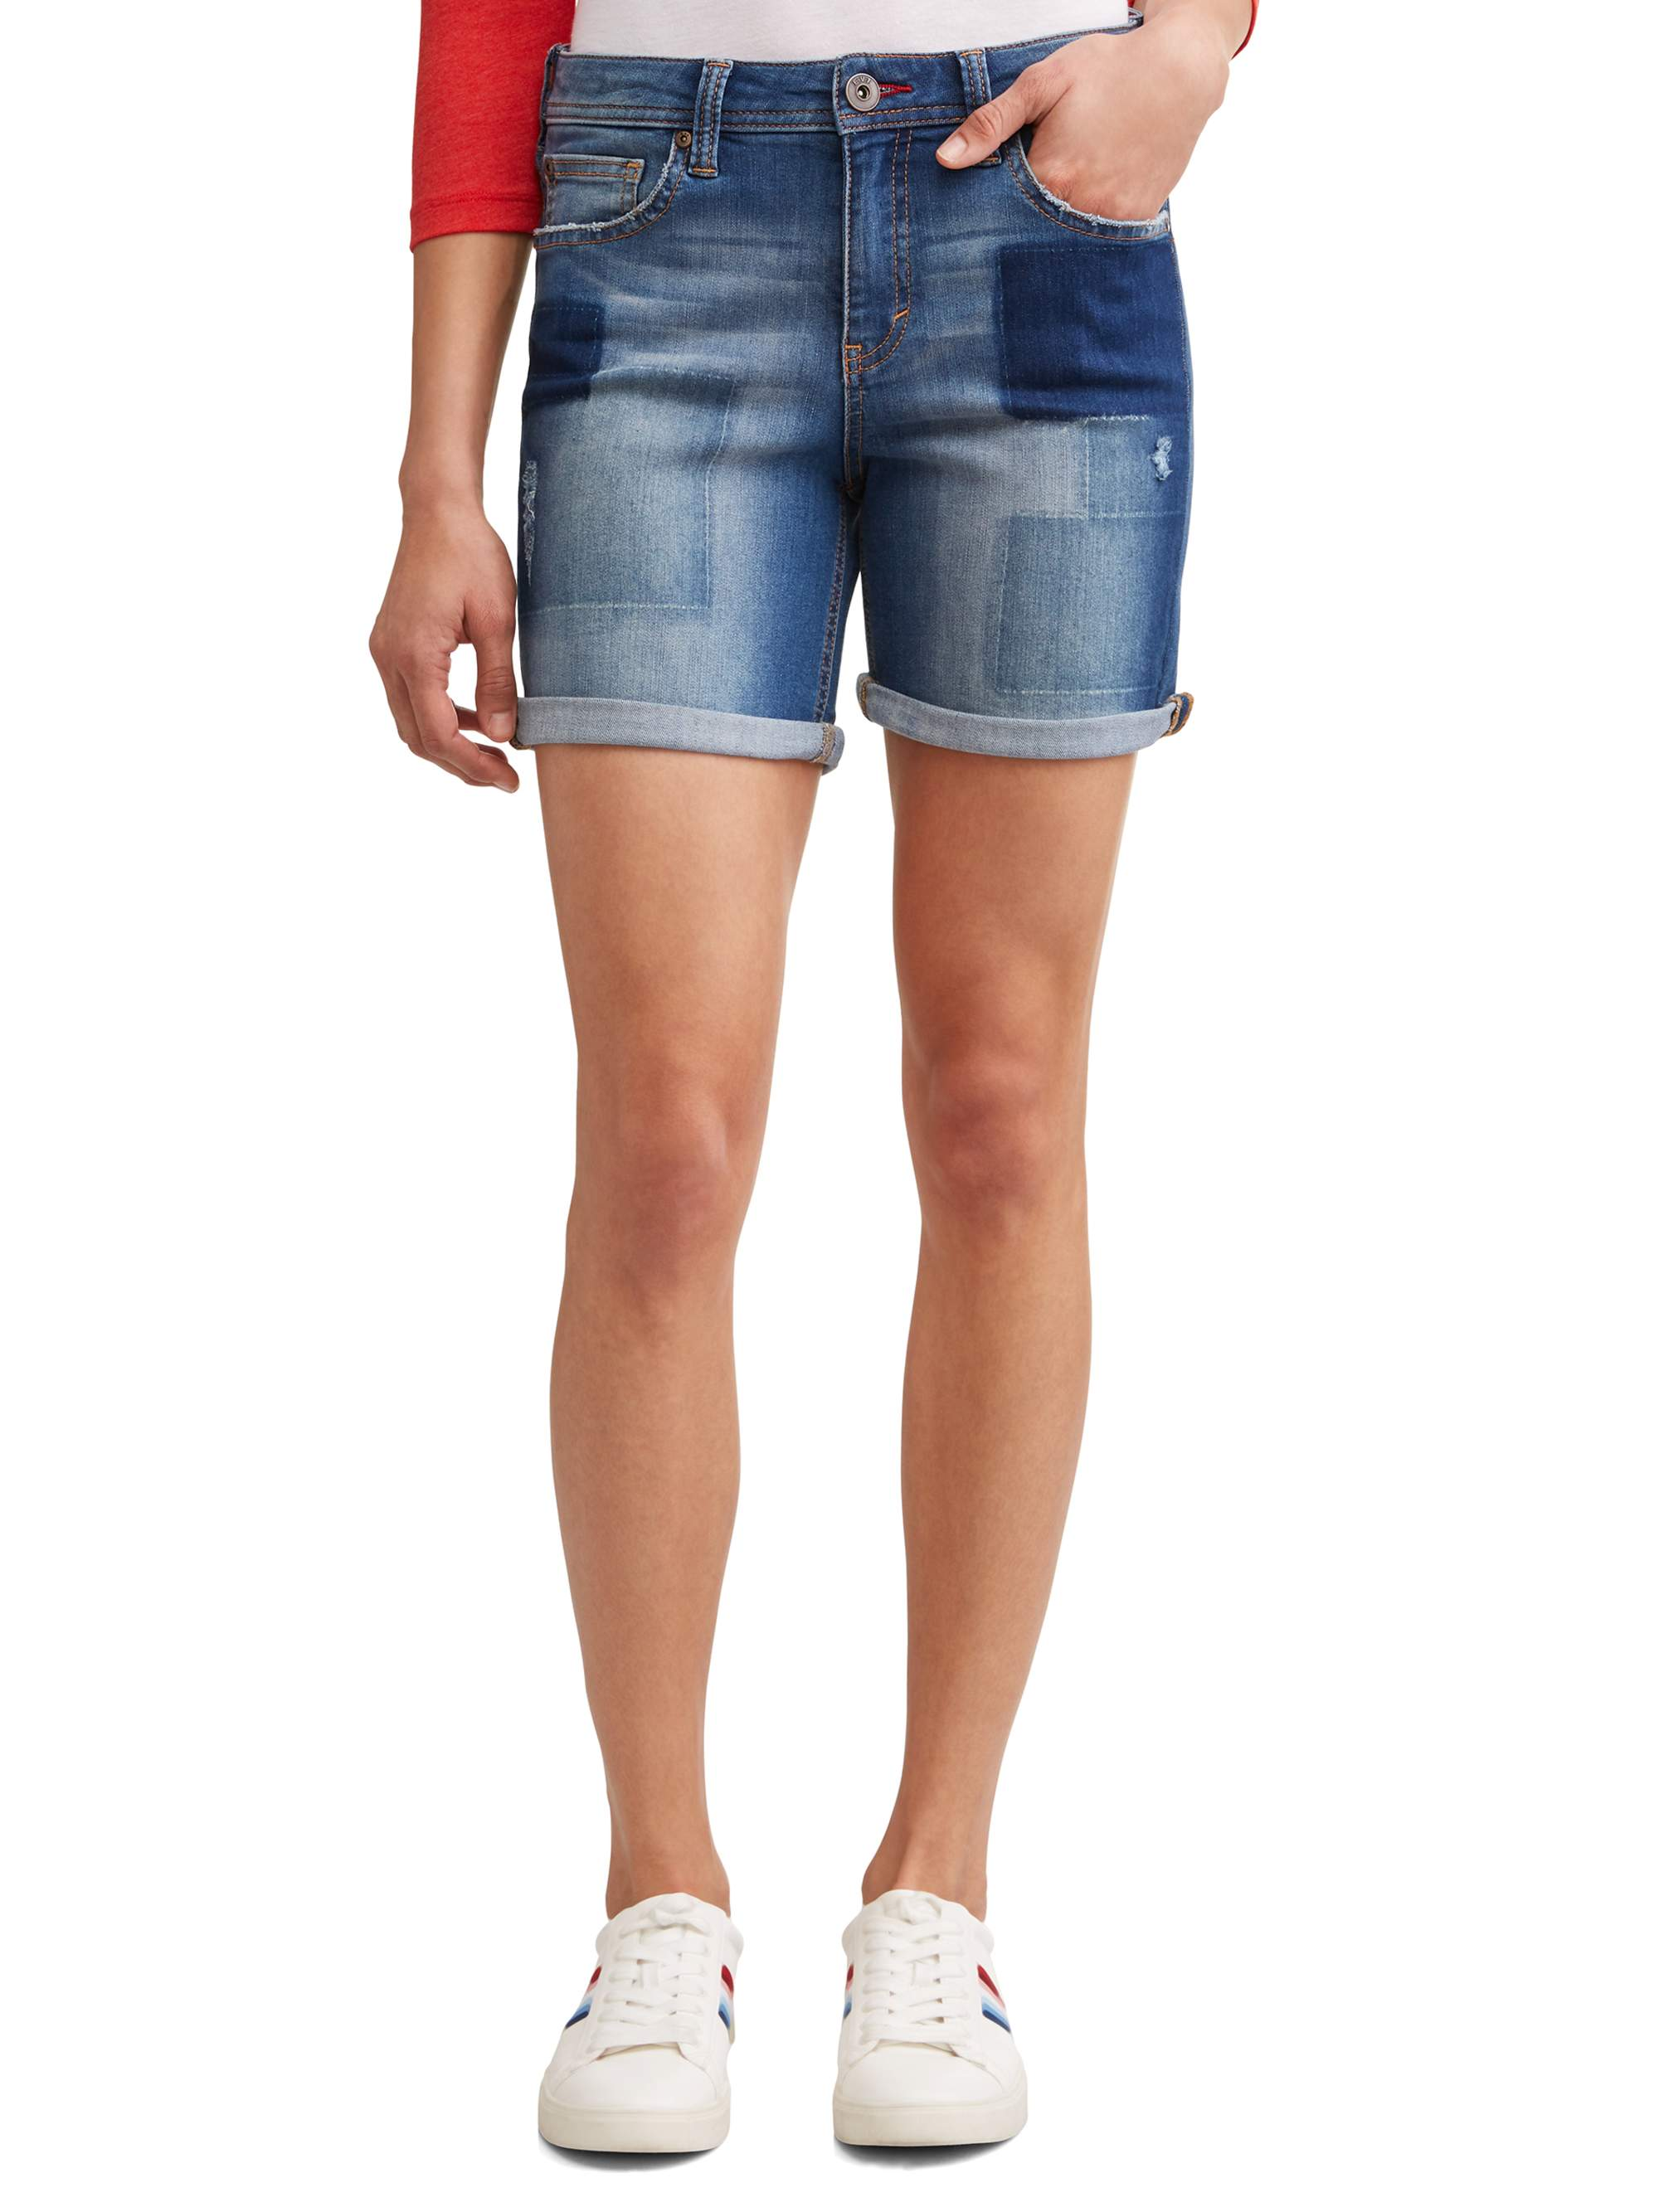 834a02eb02 Ev1 From Ellen Degeneres - Alex Relaxed Vintage Patchwork Denim Short  Women's - Walmart.com